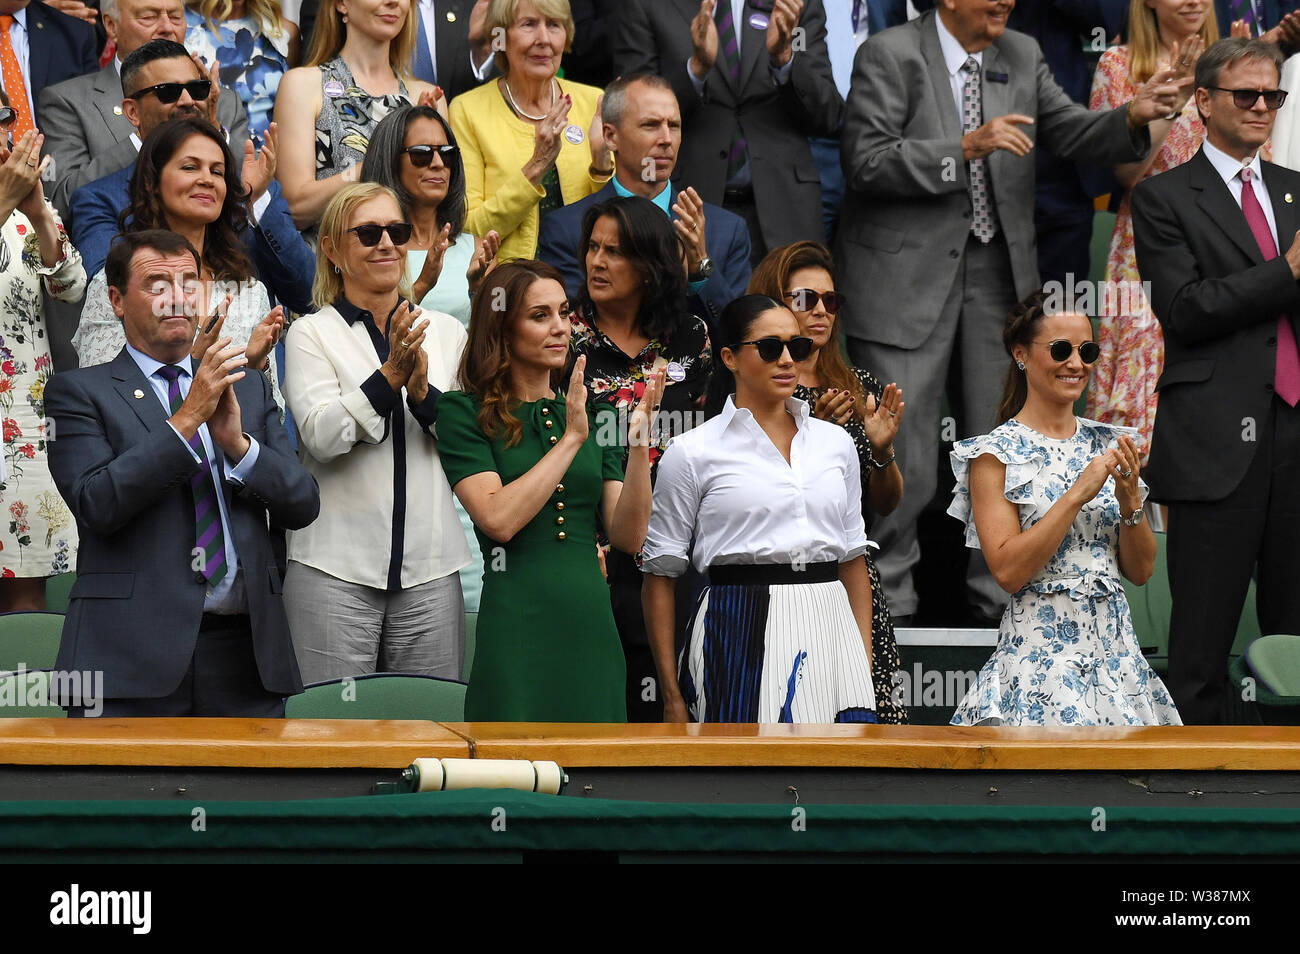 London England  13 July 2019 The Championships Wimbledon 2019 13072019  Everyone in Royal box, Katherine Duchess of Cambridge and Pippa Matthews applaud from the  Royal Box after Simona Halep wins Ladies Singles Final but  Meghan Duchess of Sussex does not join in. Photo Roger Parker International Sports Fotos Ltd/Alamy Live News - Stock Image